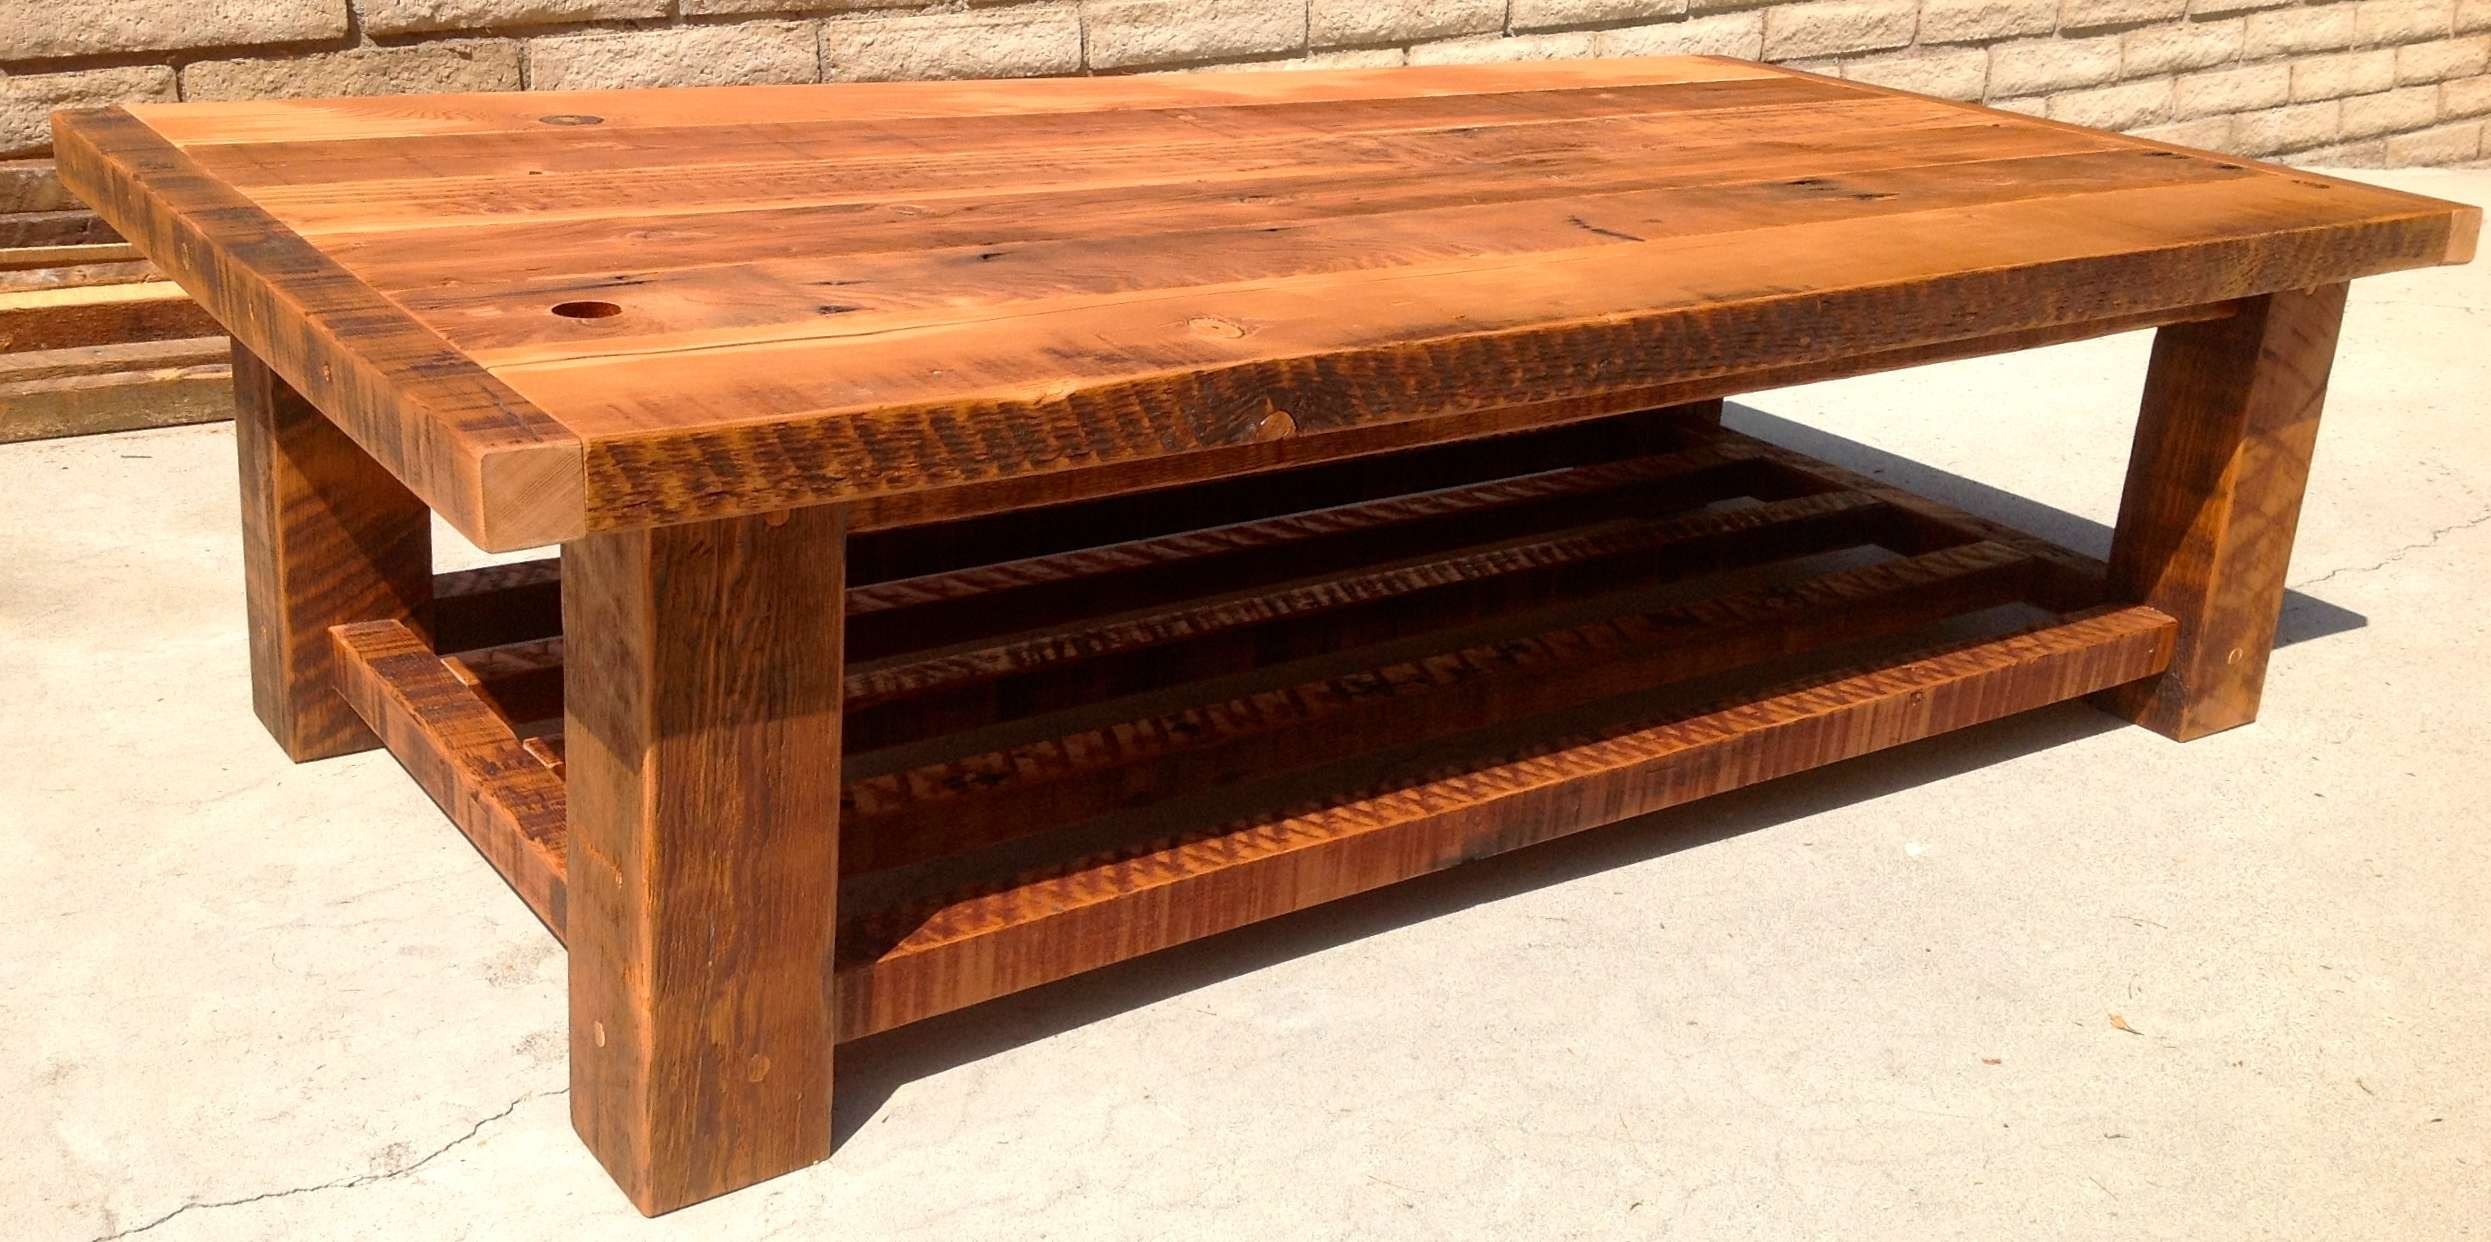 Coffee Table : Marvelous White Oak Coffee Table Cherry Coffee With Regard To 2018 Solid Wood Coffee Tables (View 17 of 20)